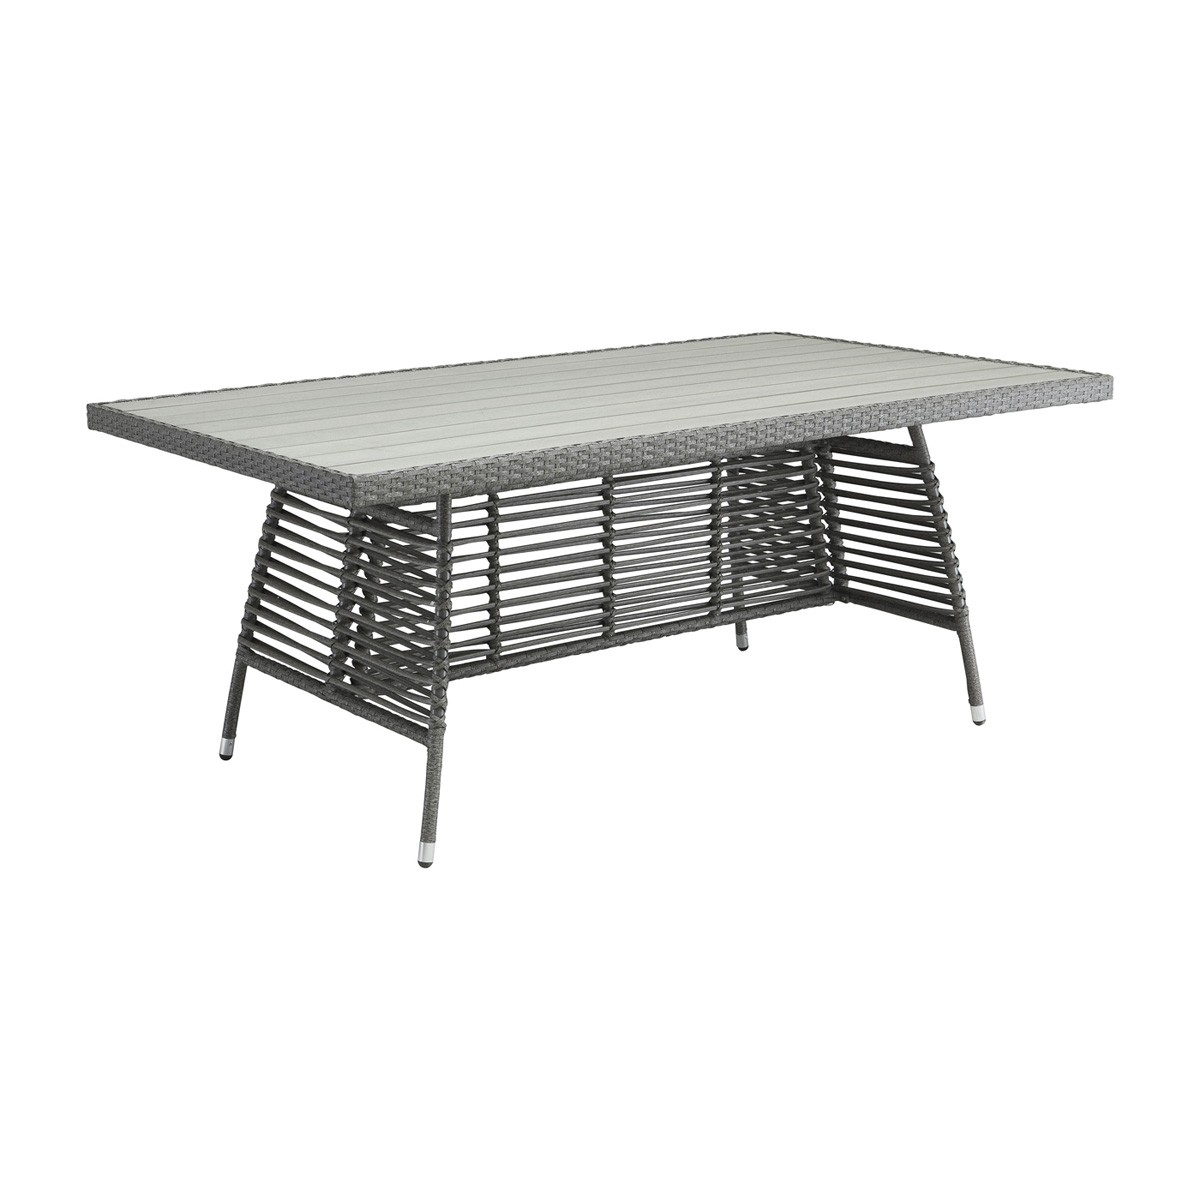 Zuo Modern Sandbanks Dining Table - Grey